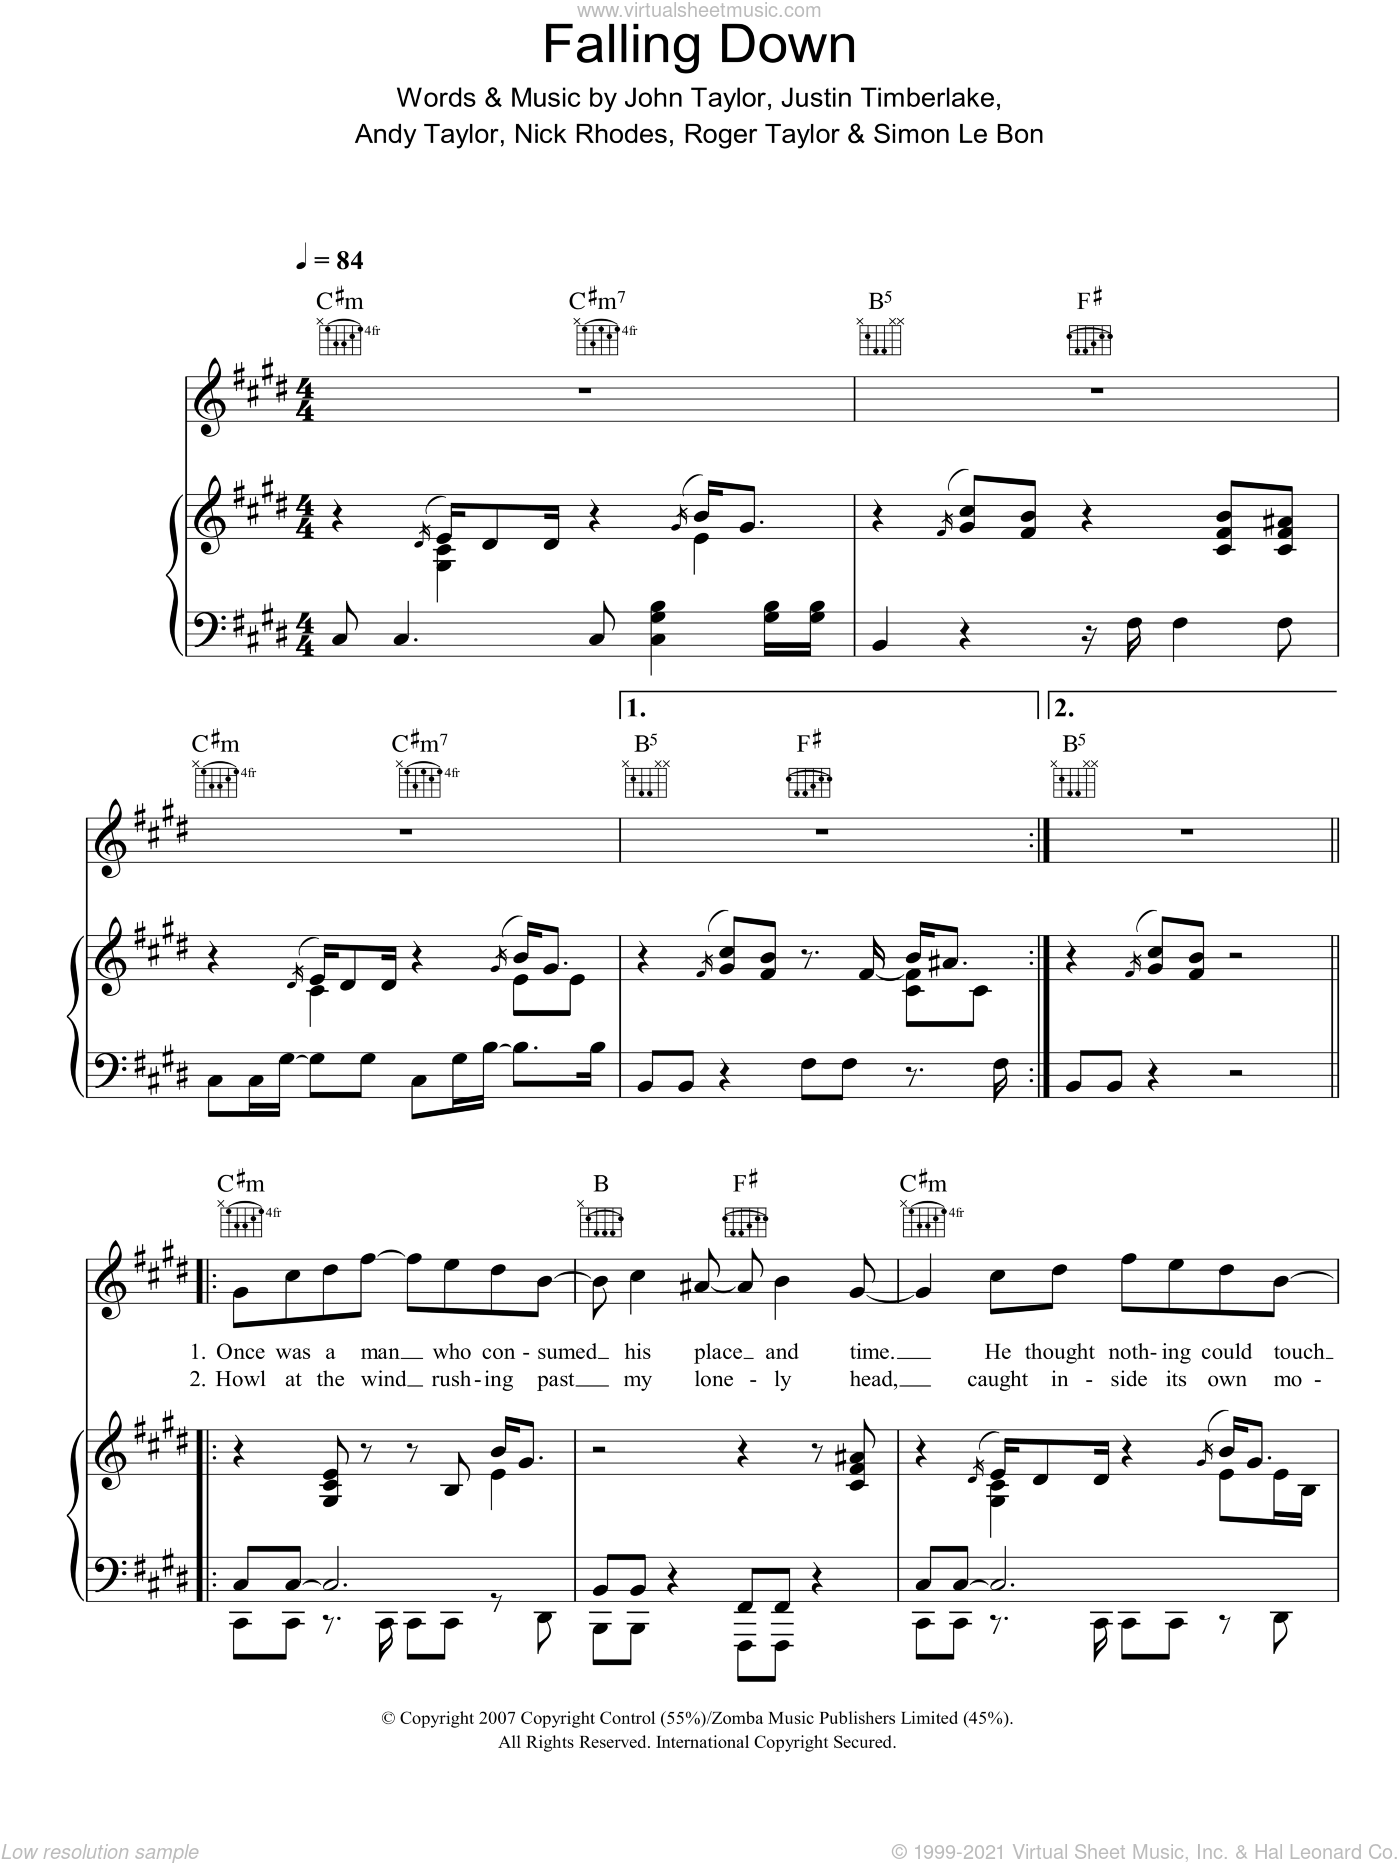 Falling Down sheet music for voice, piano or guitar by Andrew Taylor